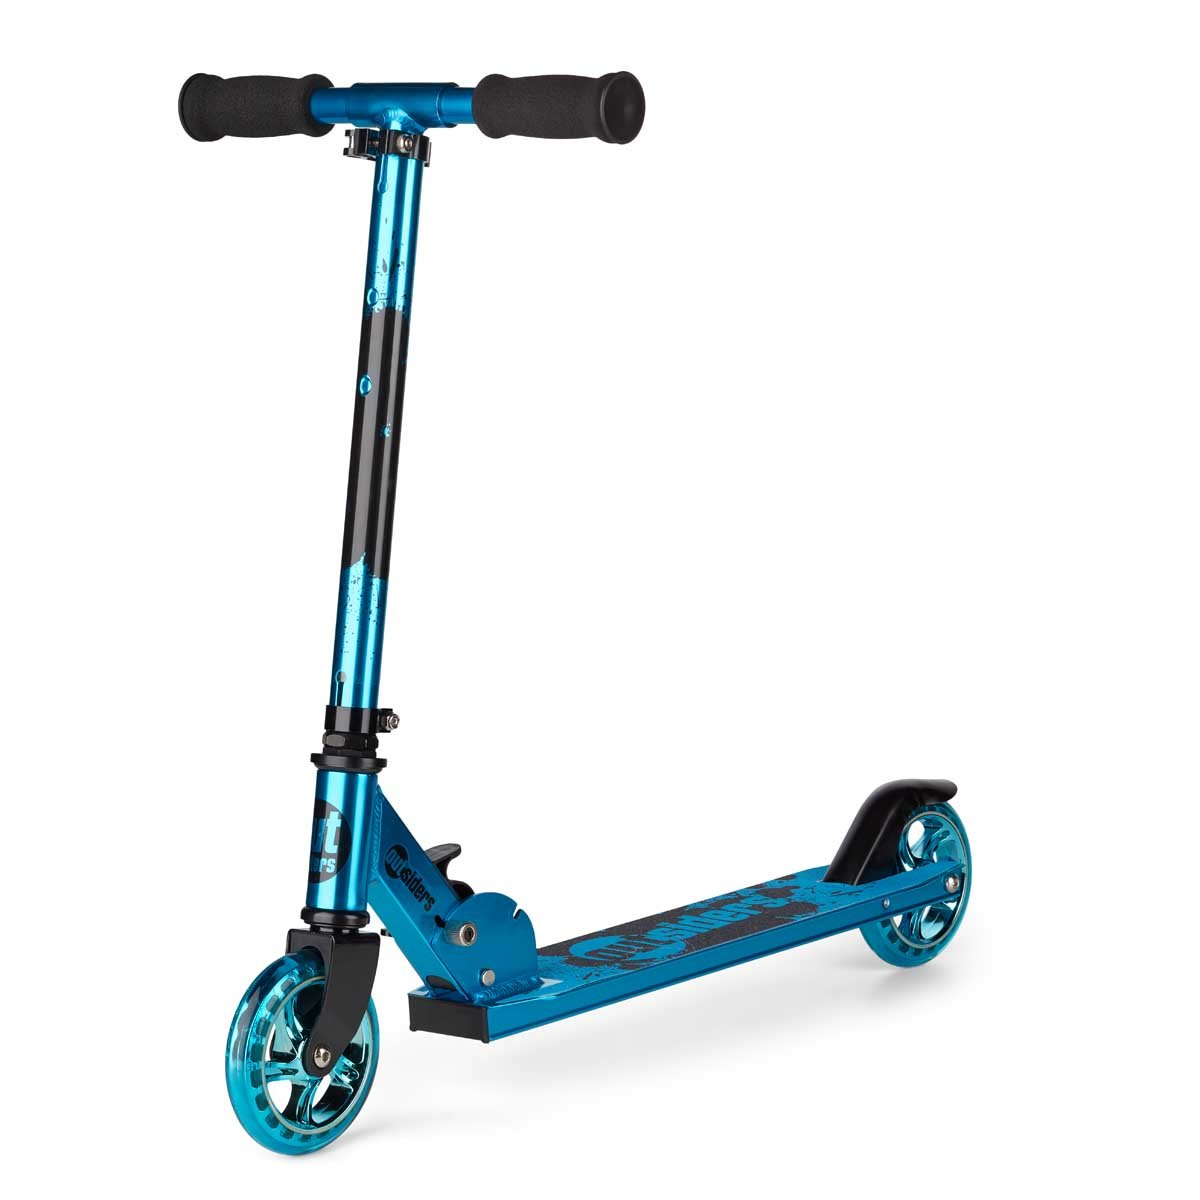 Outsiders - Premium Scooter - Chrome Blue